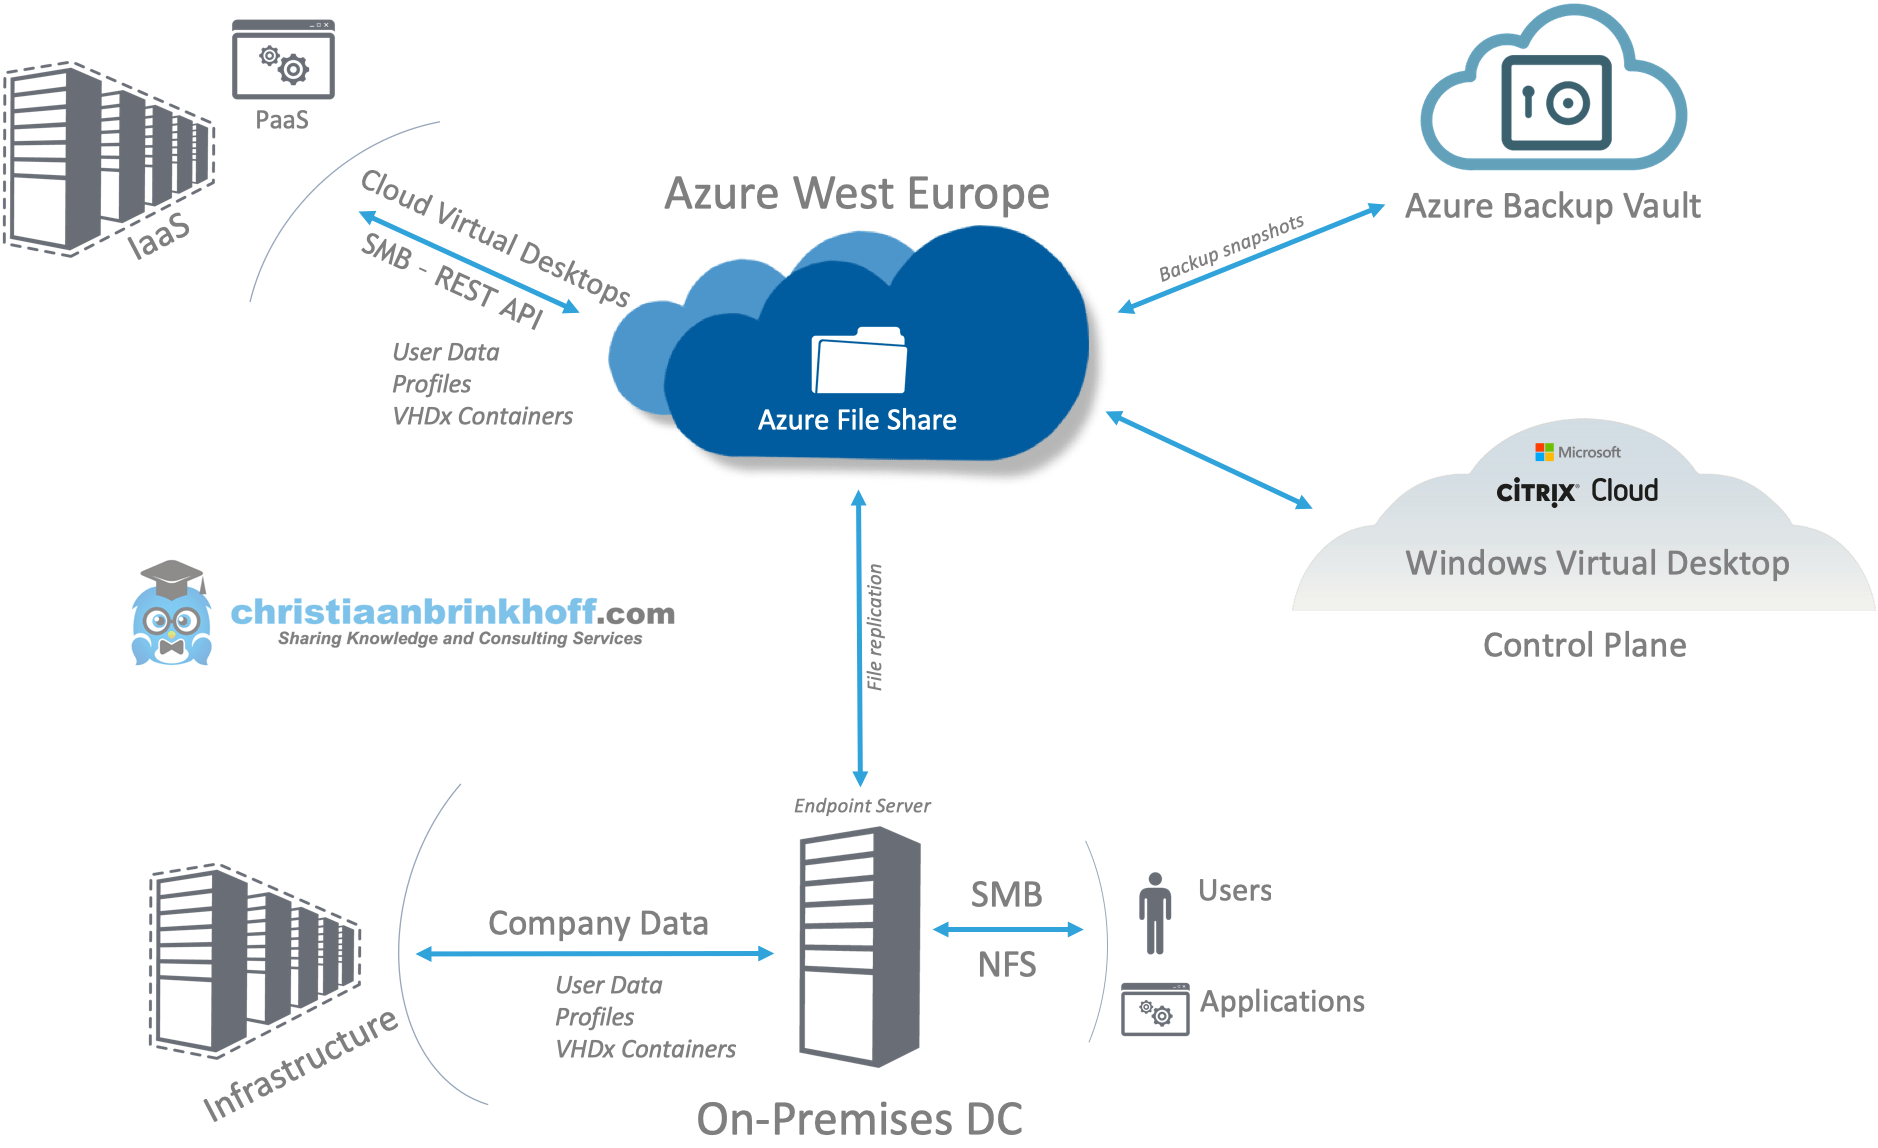 hight resolution of in this blog i would like to share my insights around how you could manage your local data better with the relatively new azure file sync service within